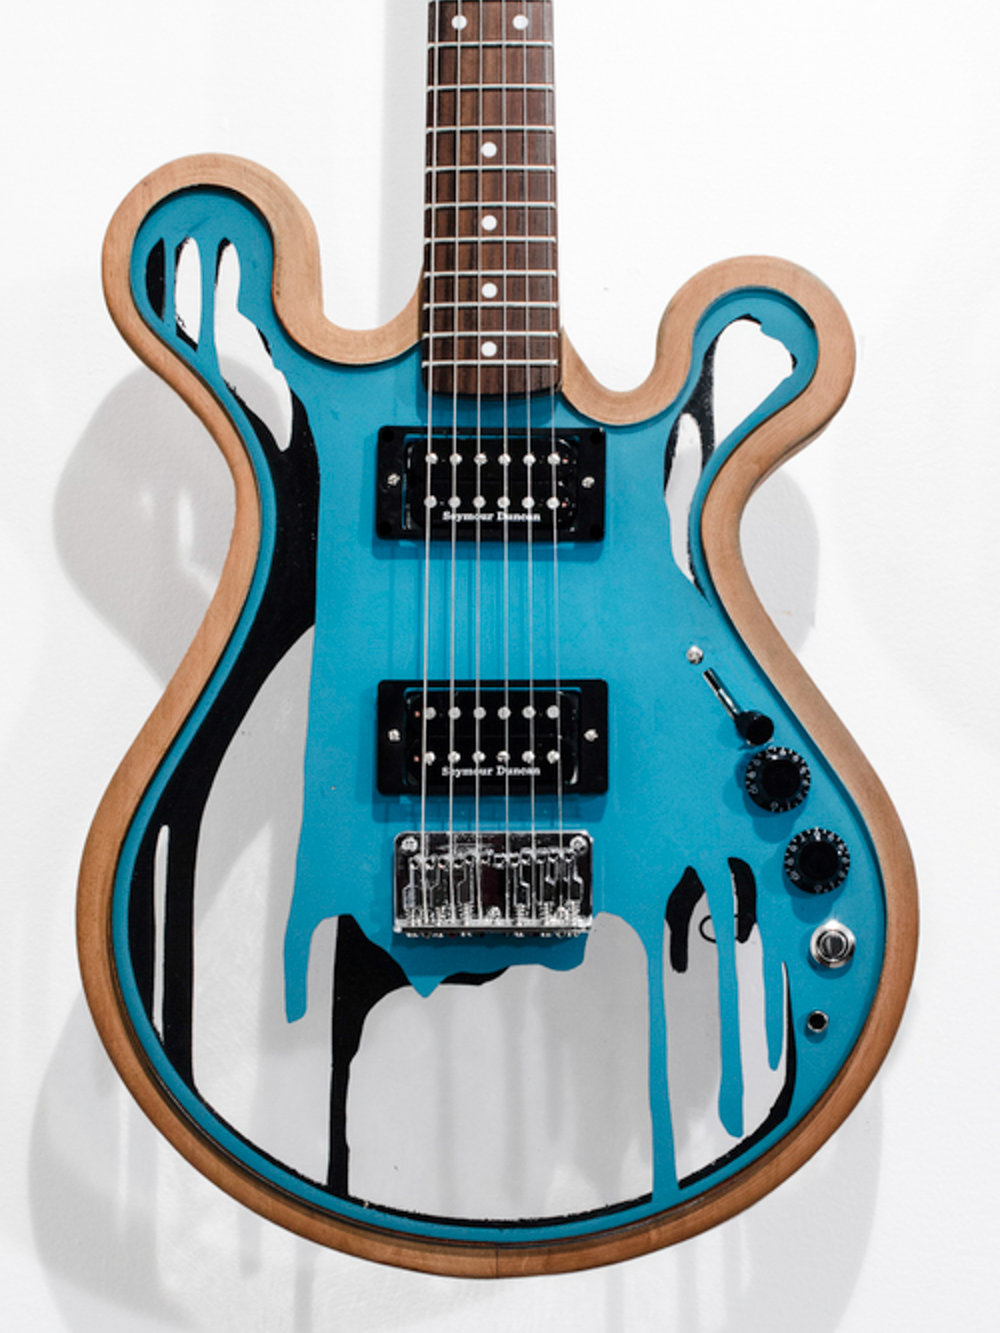 Gallo_Guitar_One_Black_Teal_Mahogany_LED.jpg